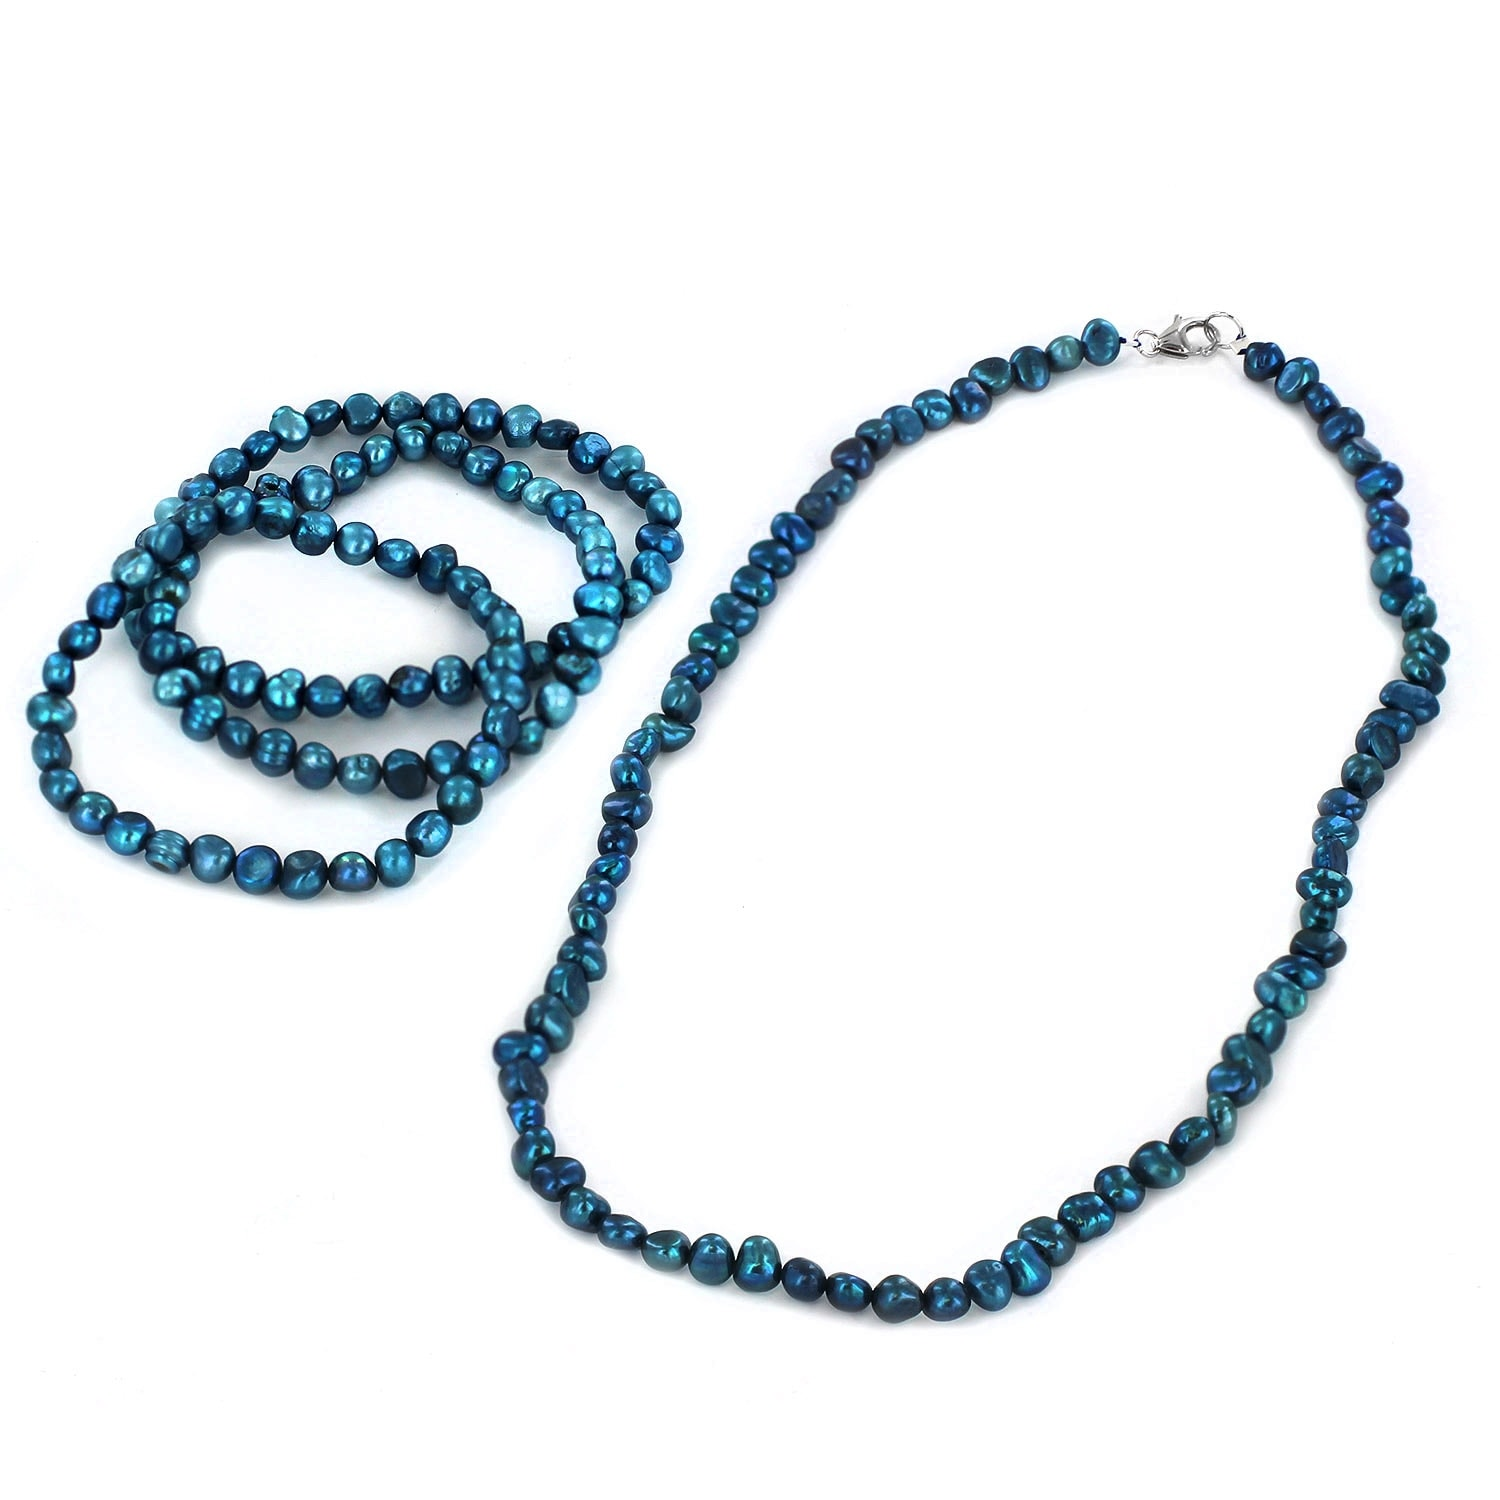 Simulated Pearl Beaded Necklace and 3 Piece Stretch Bracelet Set - Thumbnail 4